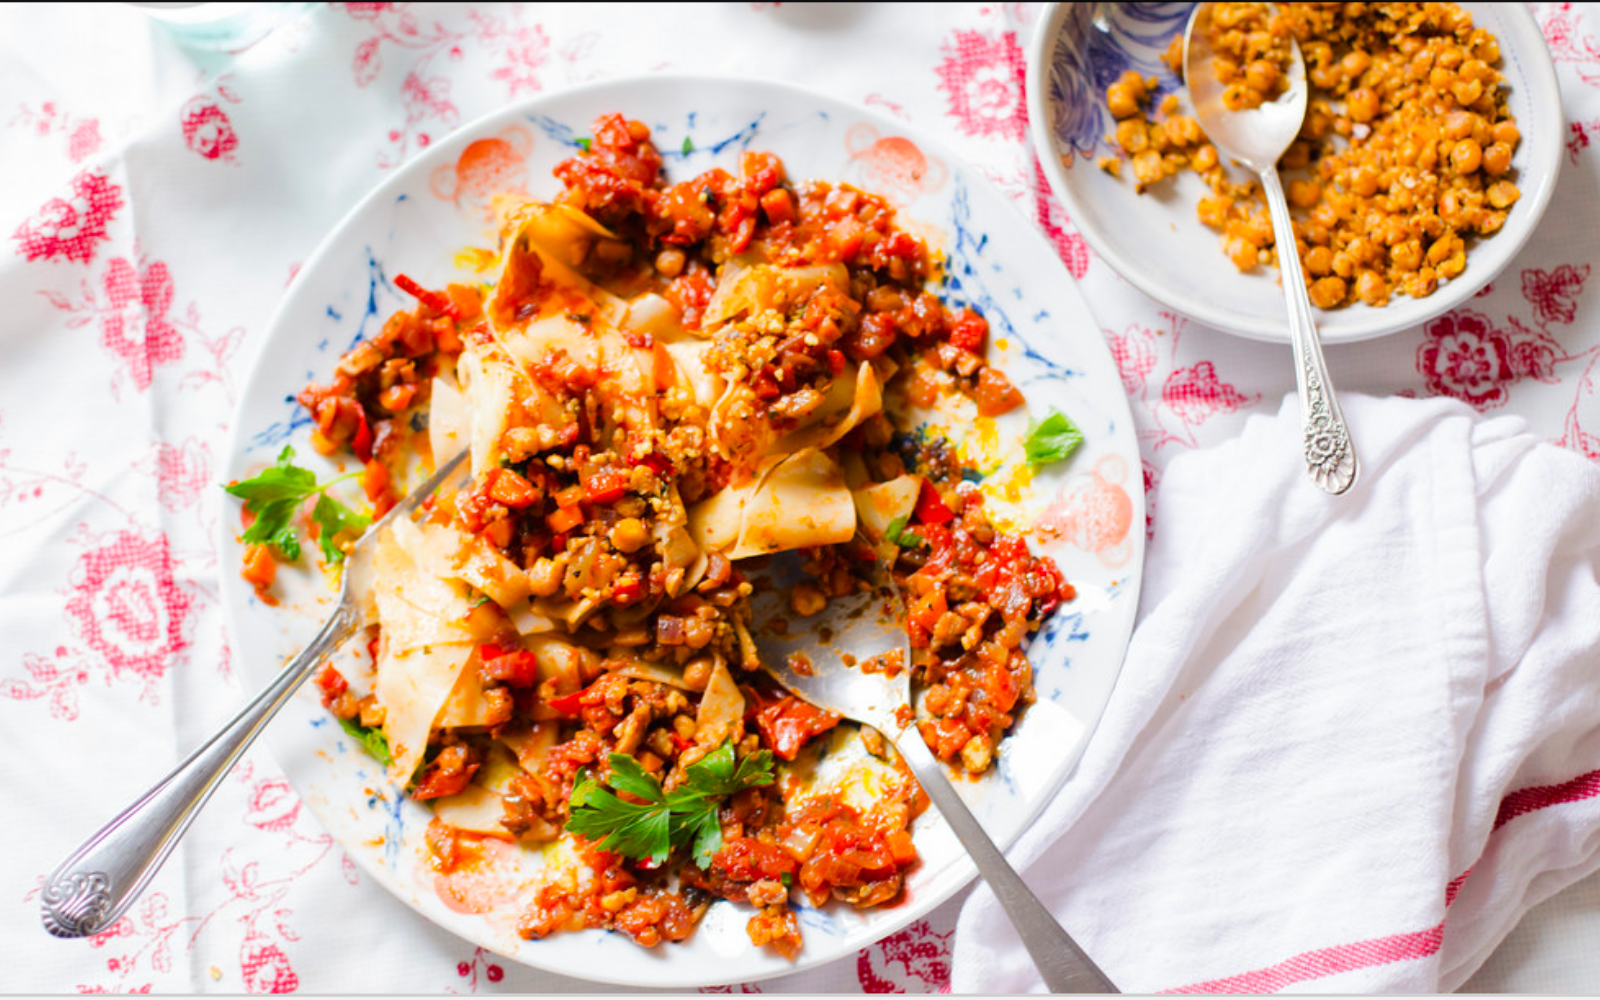 Vegan Mushroom Bolognese With Chickpea Crumble